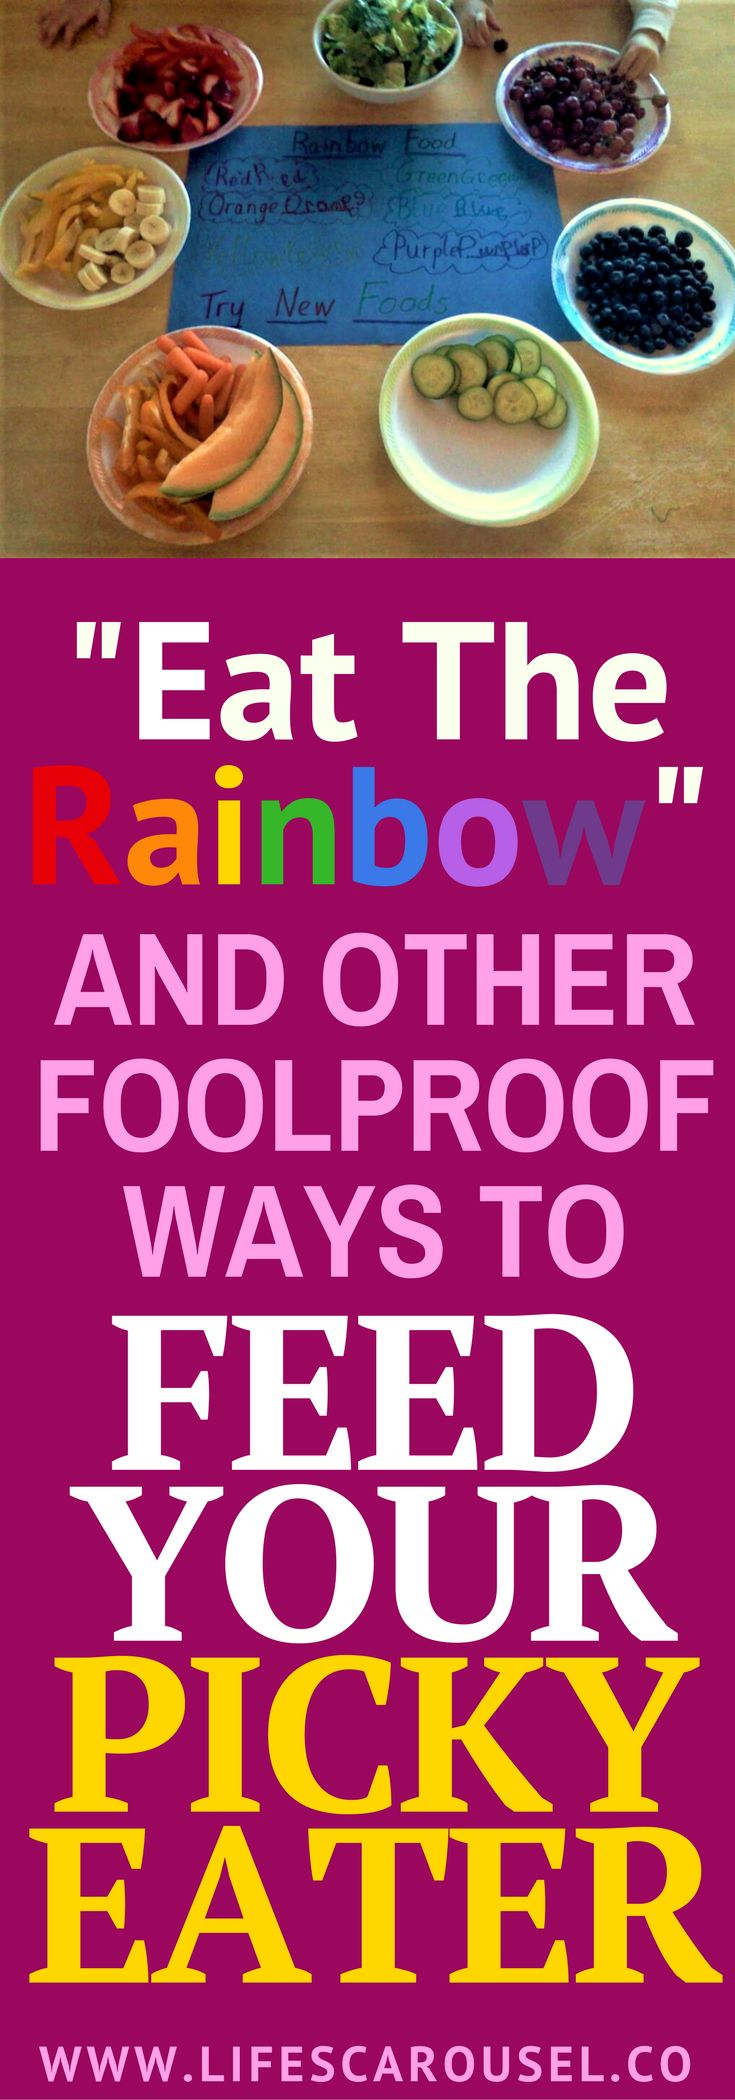 """Eat The Rainbow"" and other Foolproof Ways to Feed Your Picky Eater. Ideas to help get your picky eater toddler or kid to try new foods."